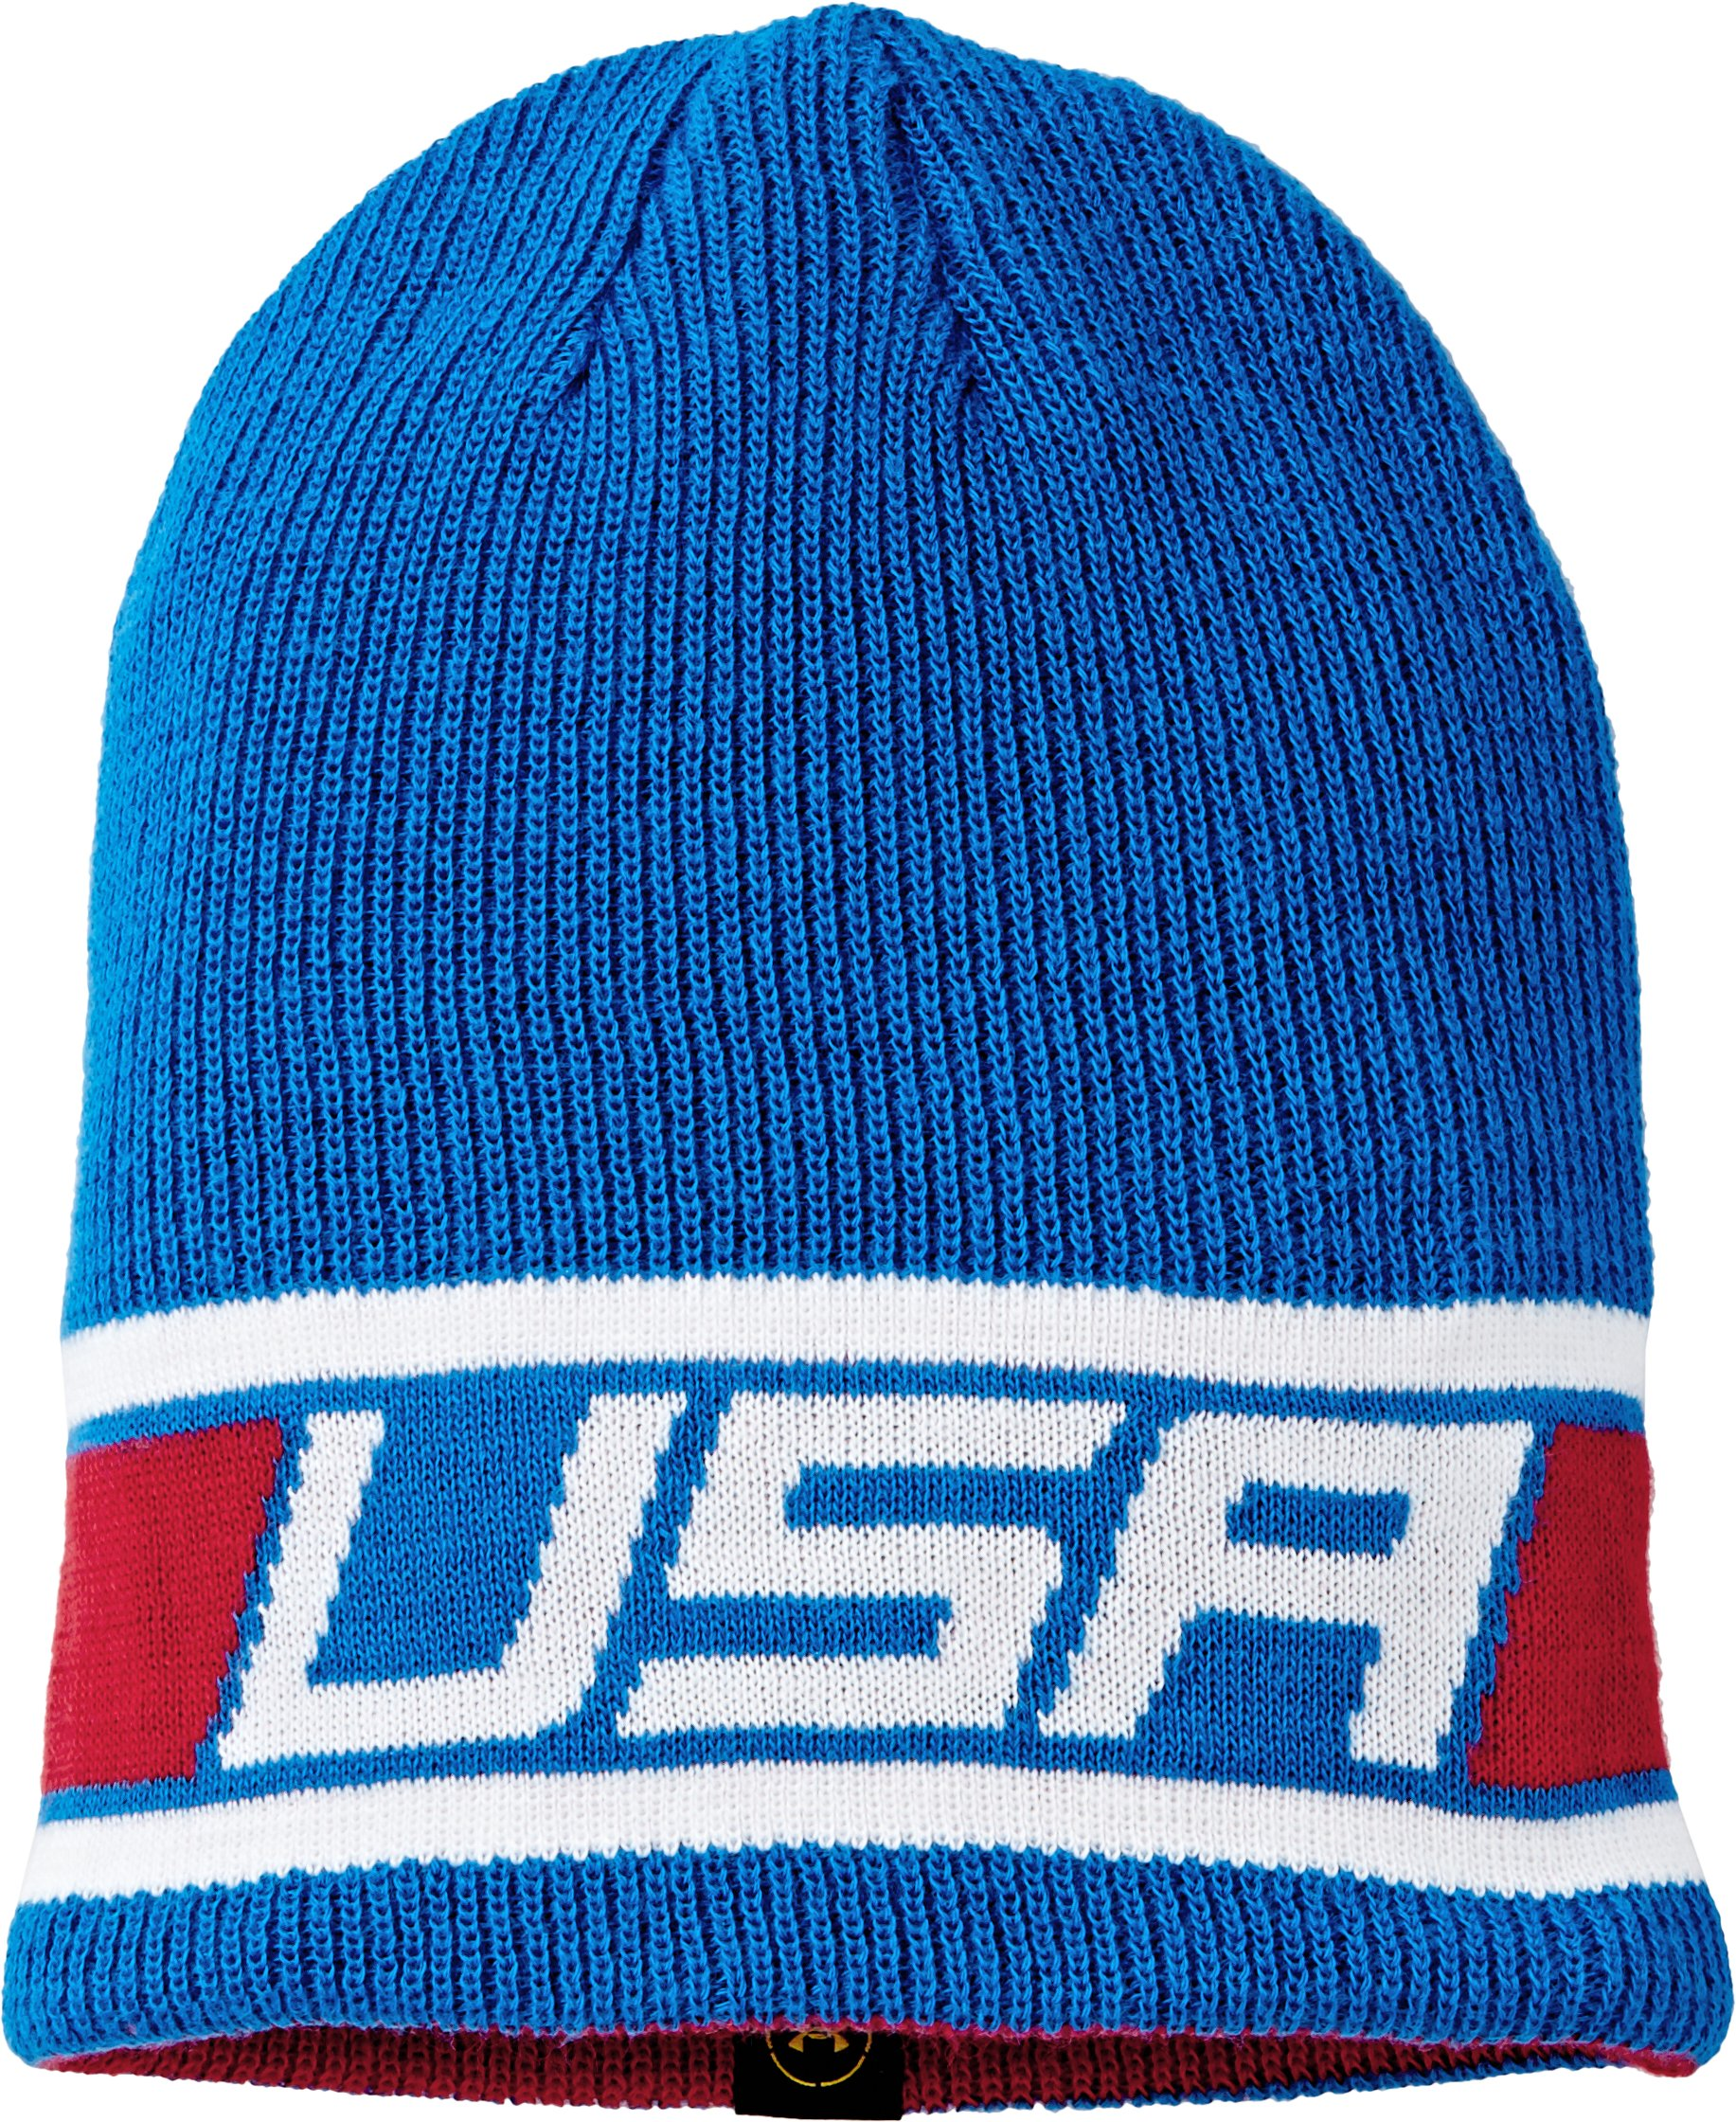 USA Beanie, SCATTER